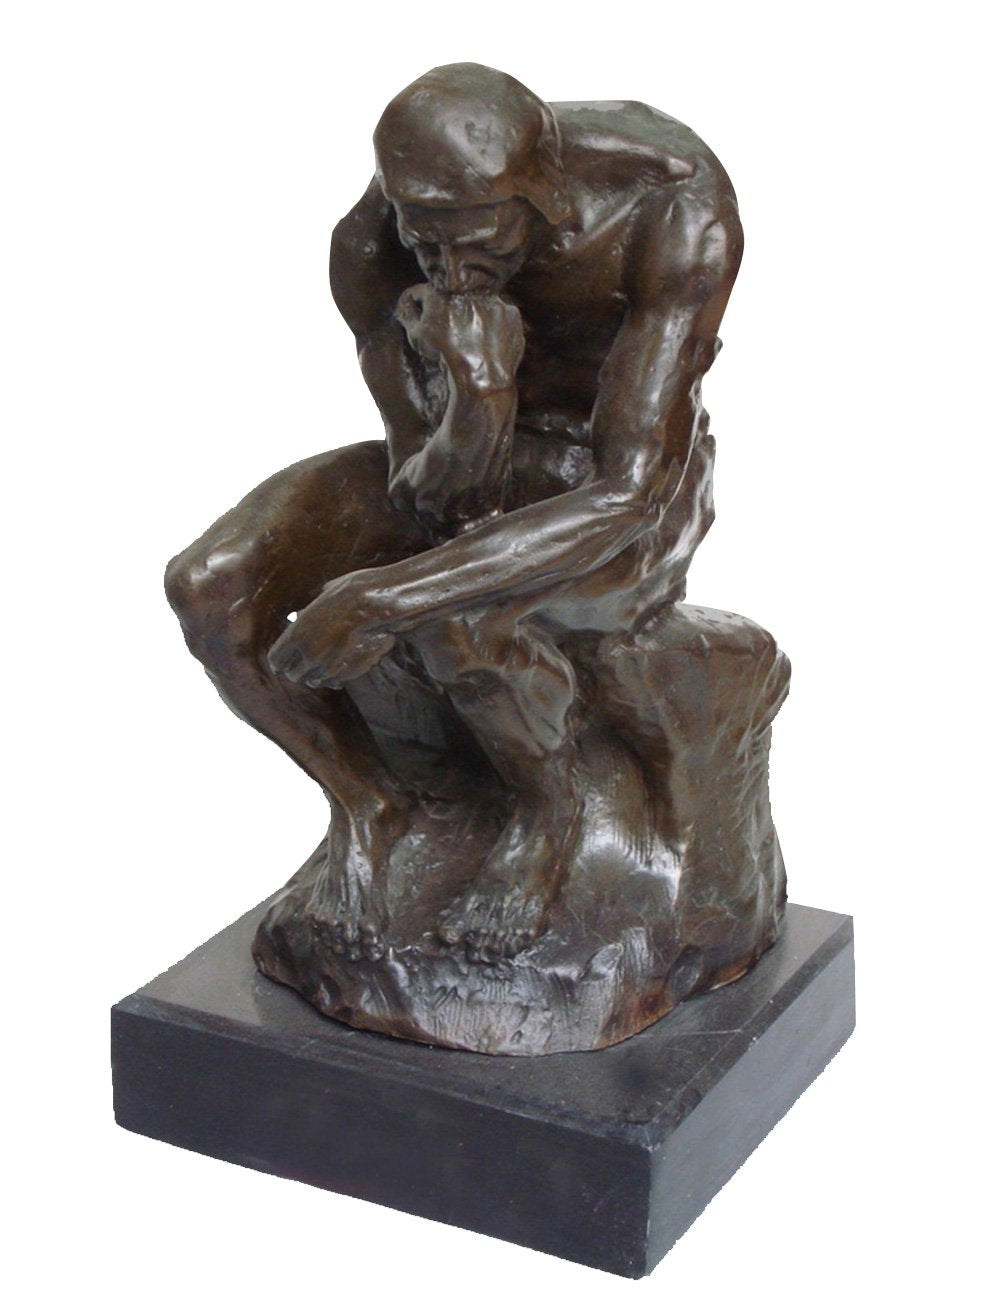 TPY-179 bronze sculpture